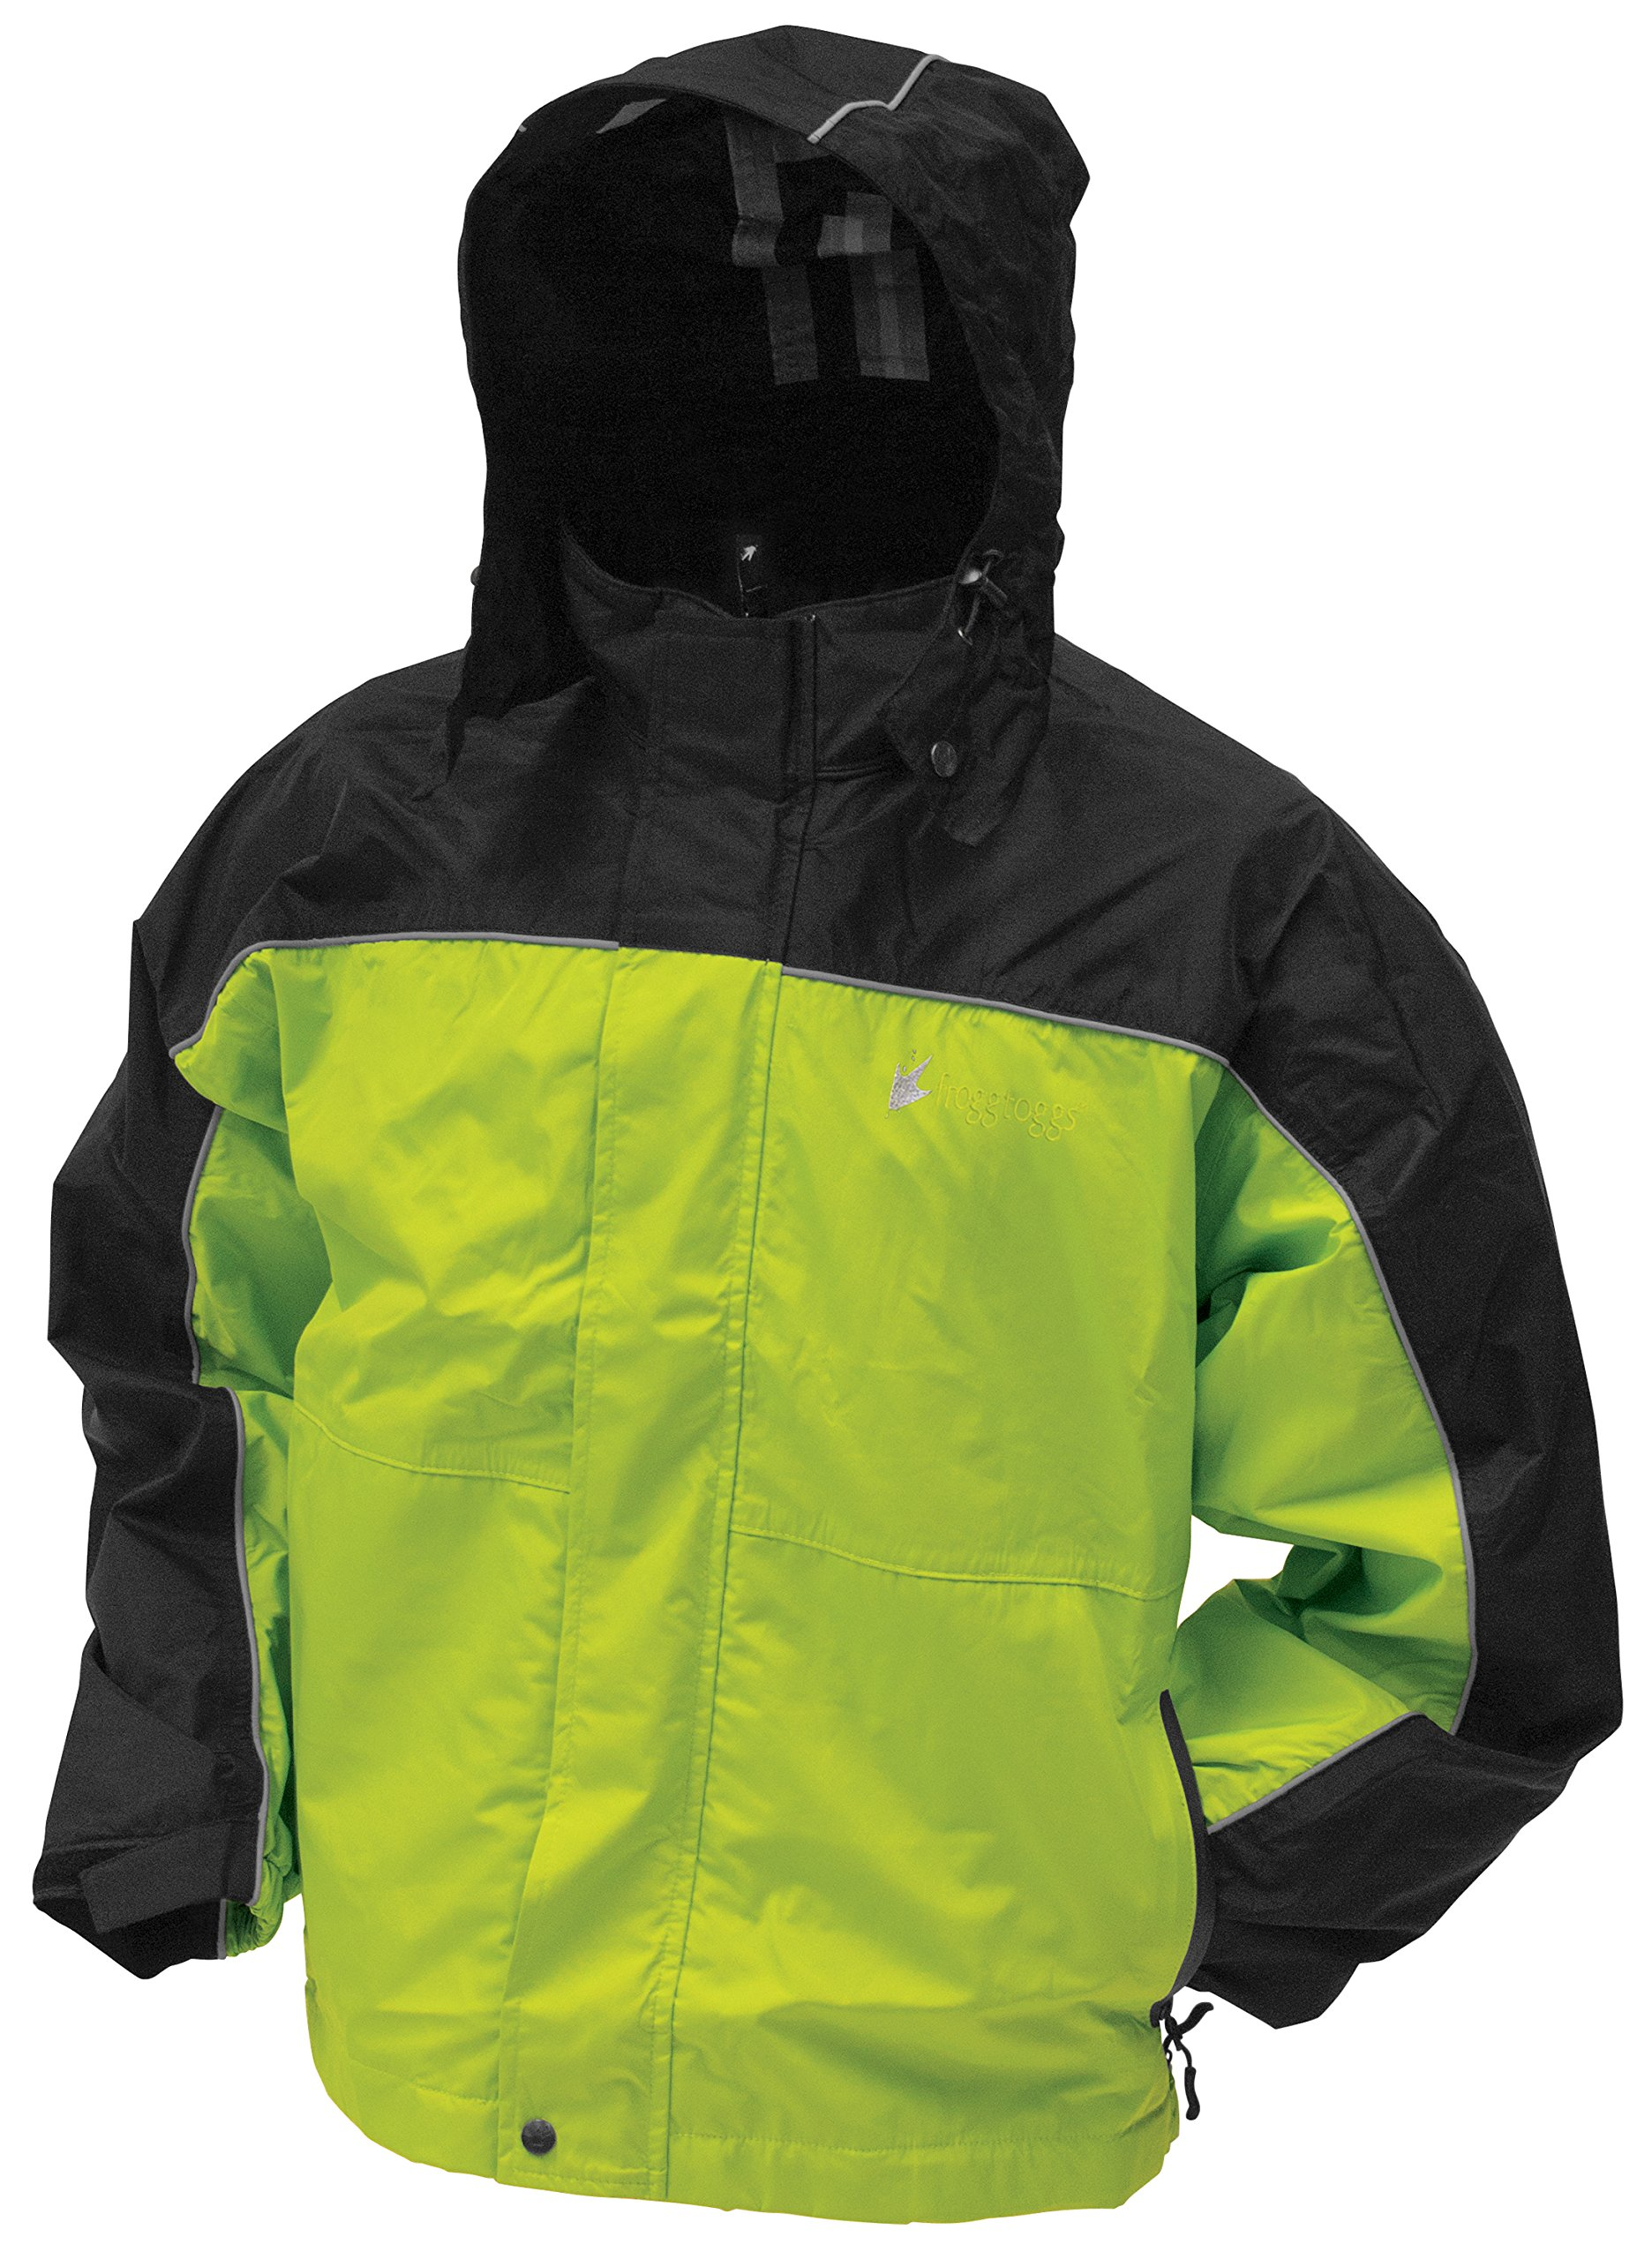 Frogg Toggs Toadz Highway Reflective Jacket, Black/Hivis Reflective, Size Small